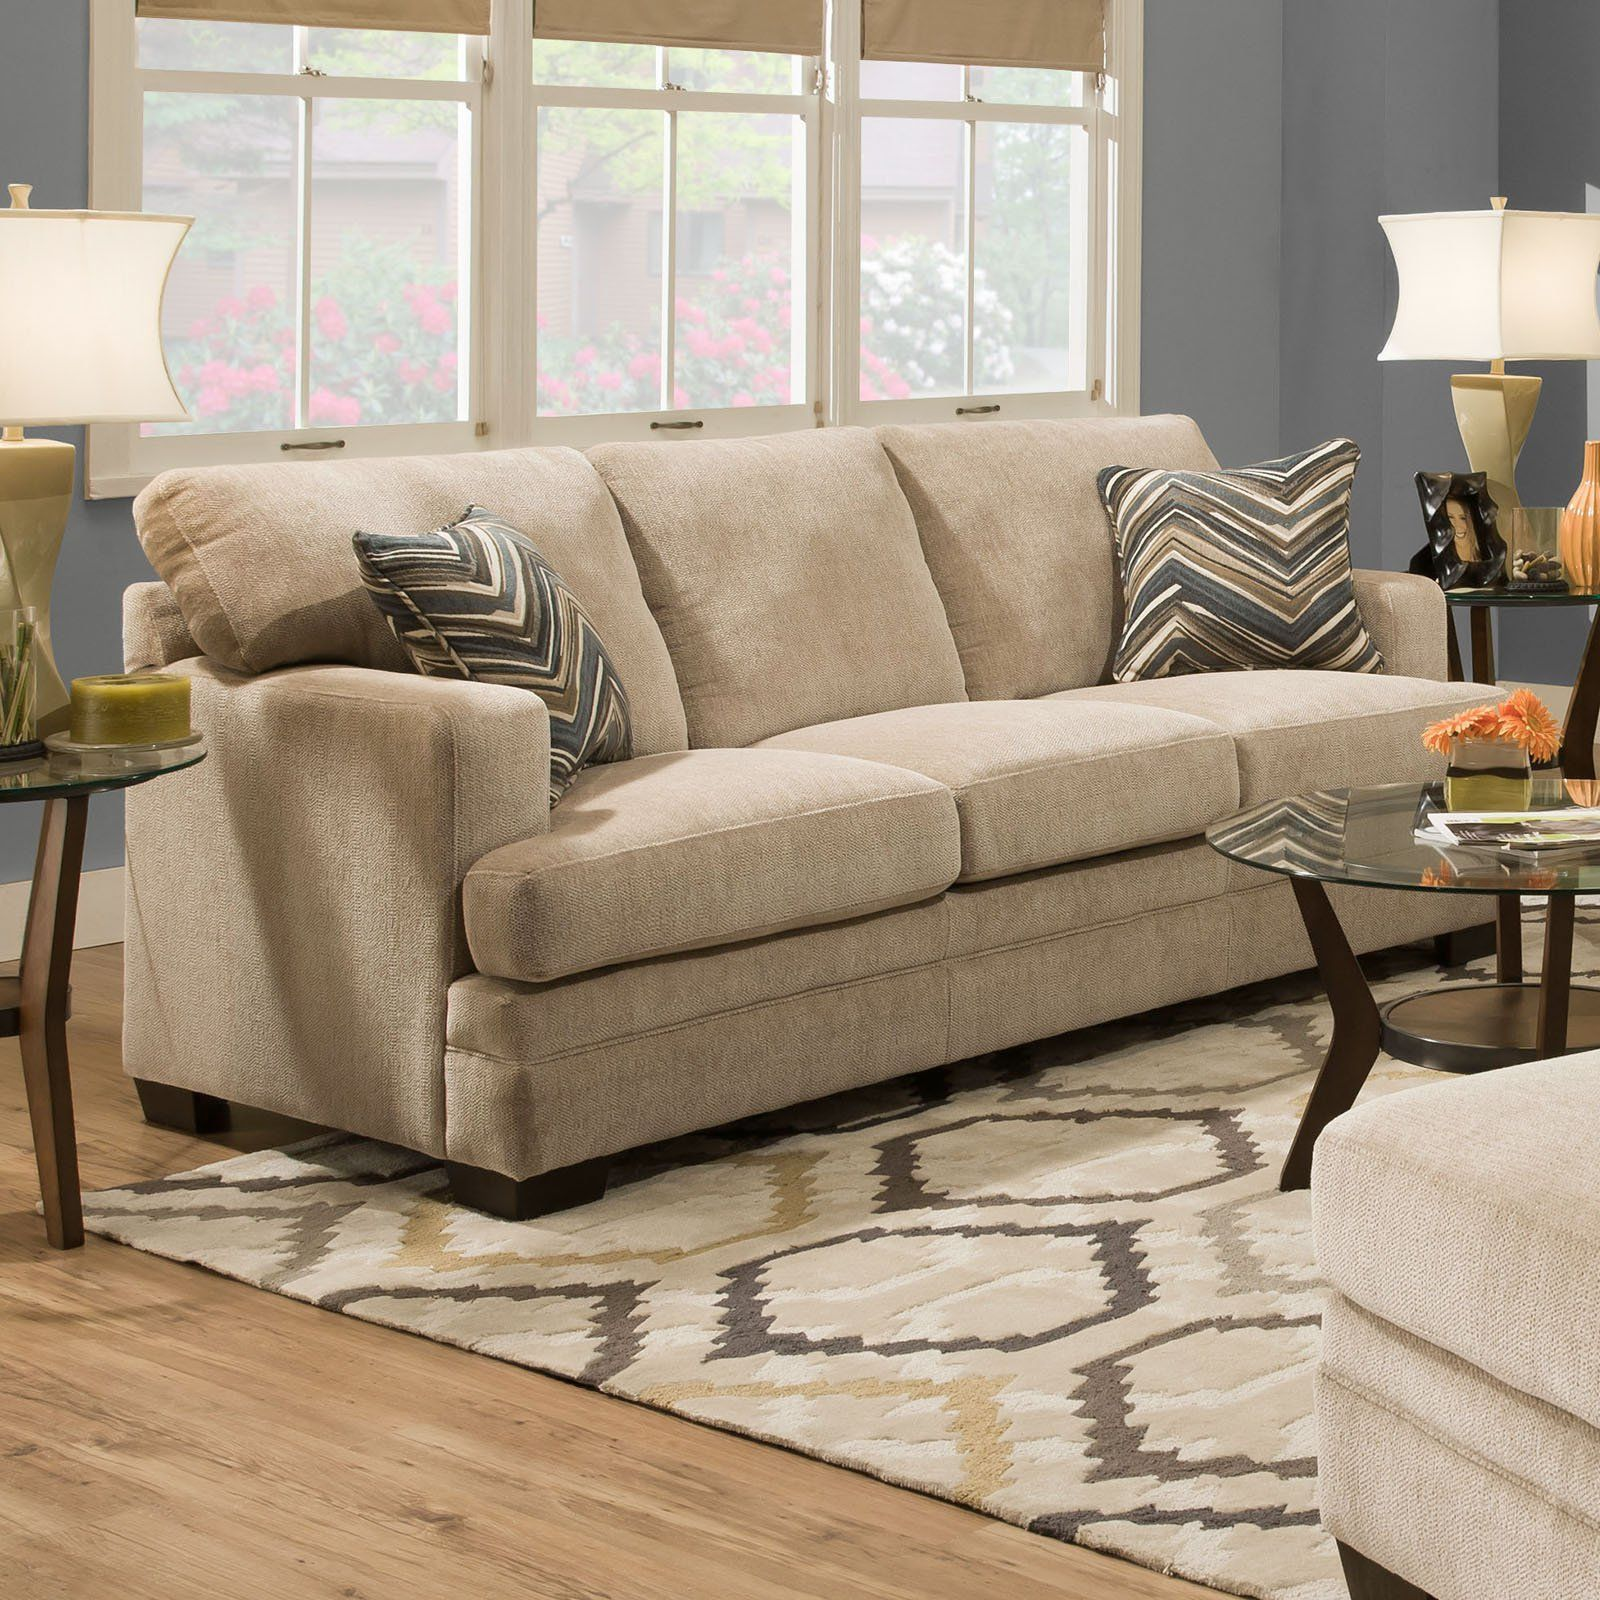 Simmons Upholstery Sassy Queen Hide A Bed   Barley ...